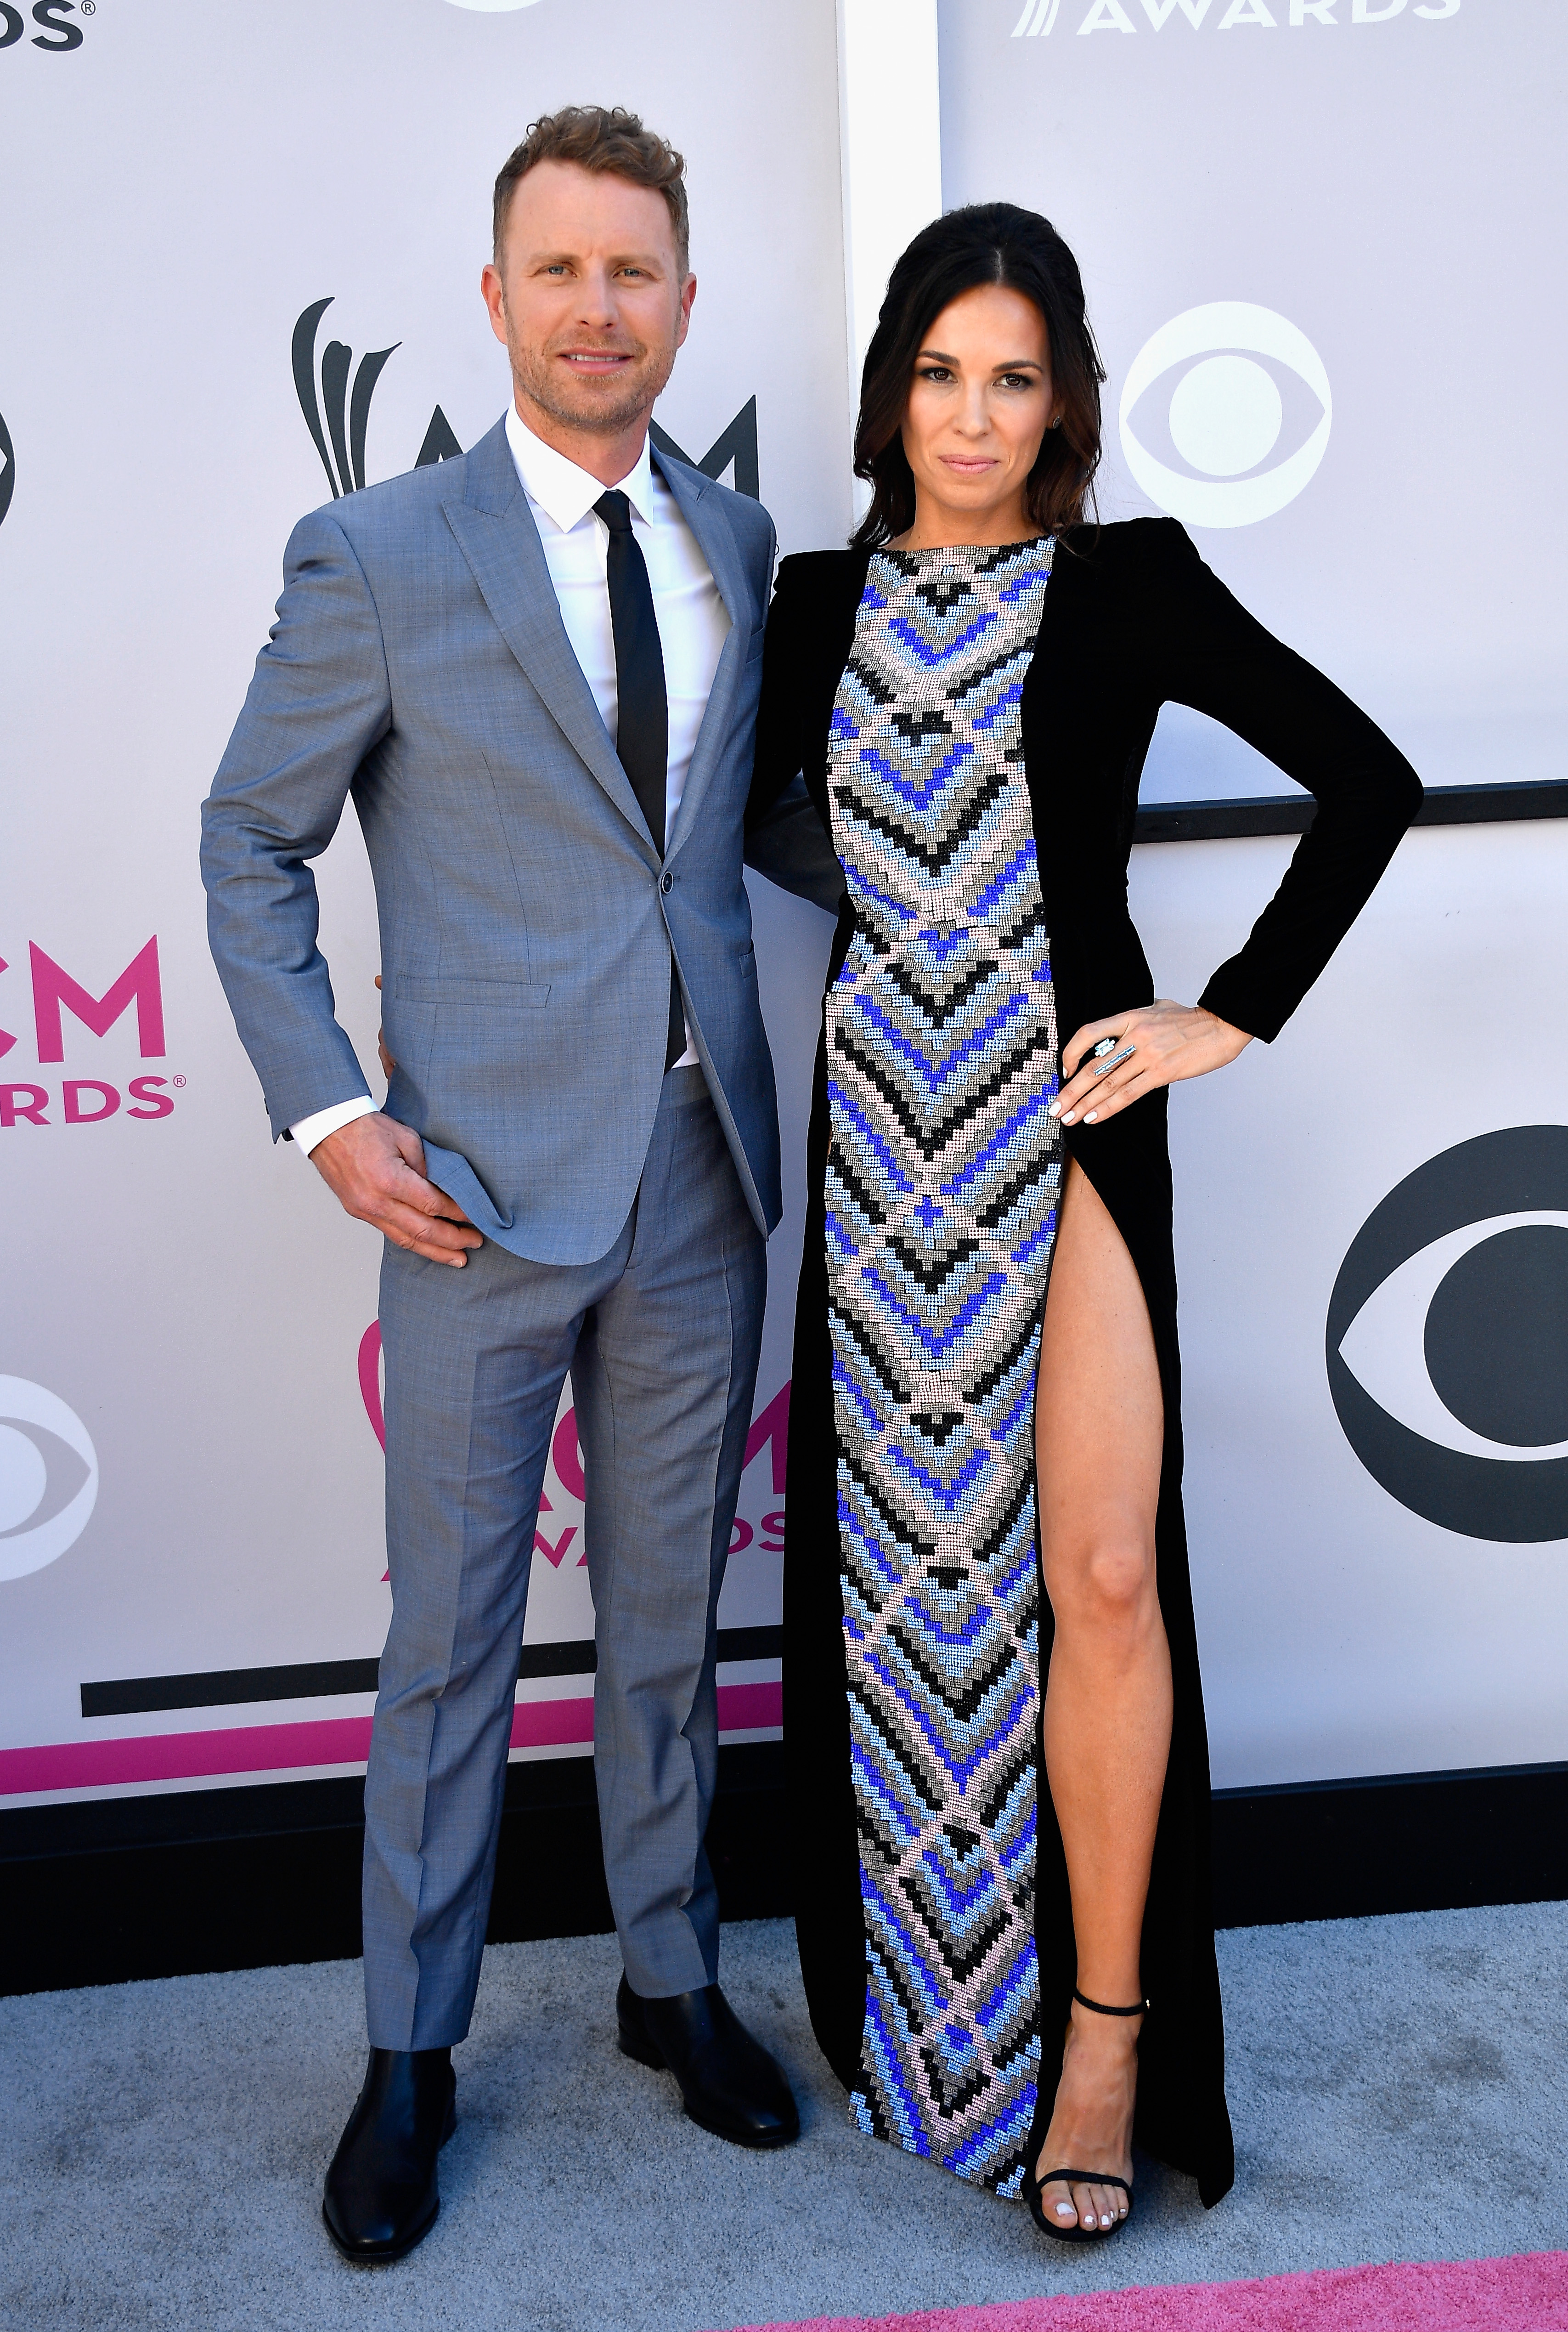 Dierks Bentley and Cassidy Black; Photo by Frazer Harrison/Getty Images